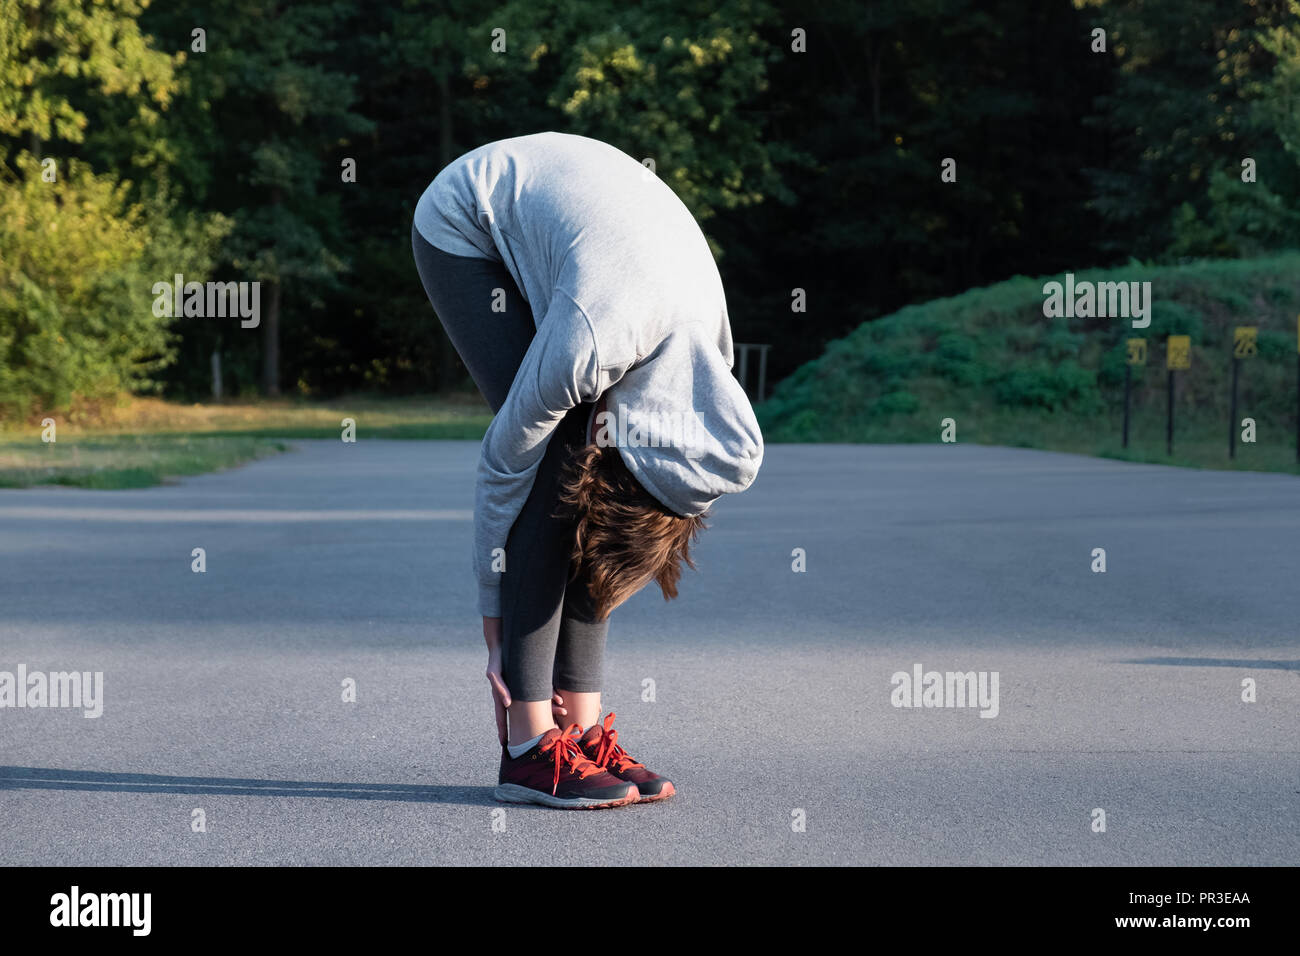 Woman doing beginner yoga excercise for stretching at park. Female person stretching before jogging outdoors - Stock Image